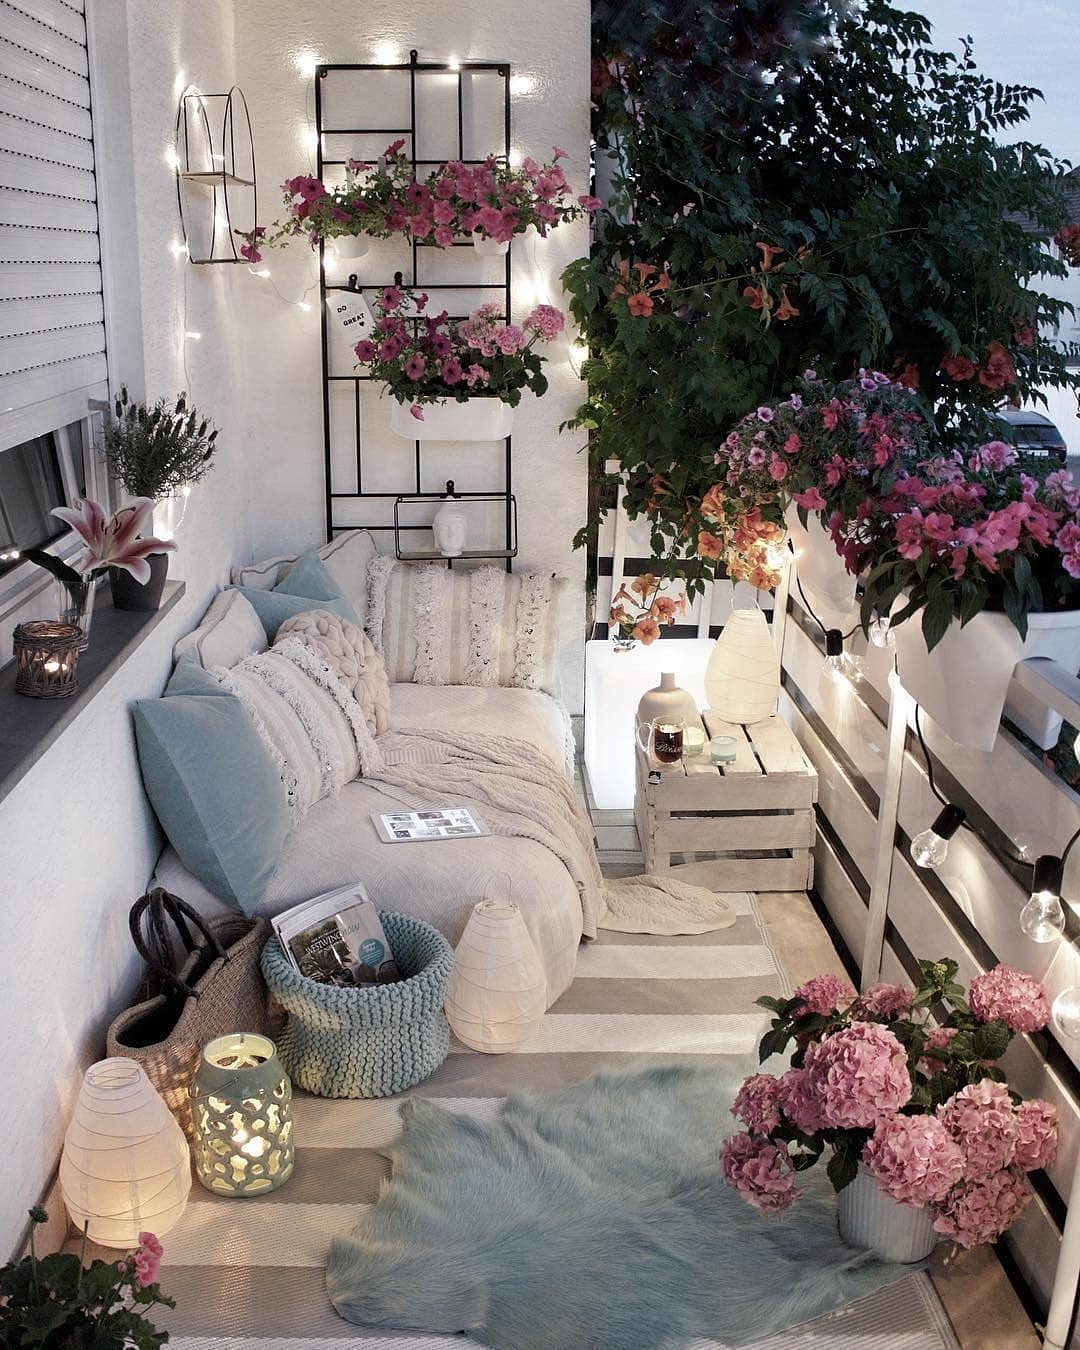 The Best Decorated Small Outdoor Balconies on Pinterest | Small Patio Decor Ideas | Boho Apartment Patio Inspiration | Outdoor Furniture Inspiration | Cozy Neutral Outdoor Decor